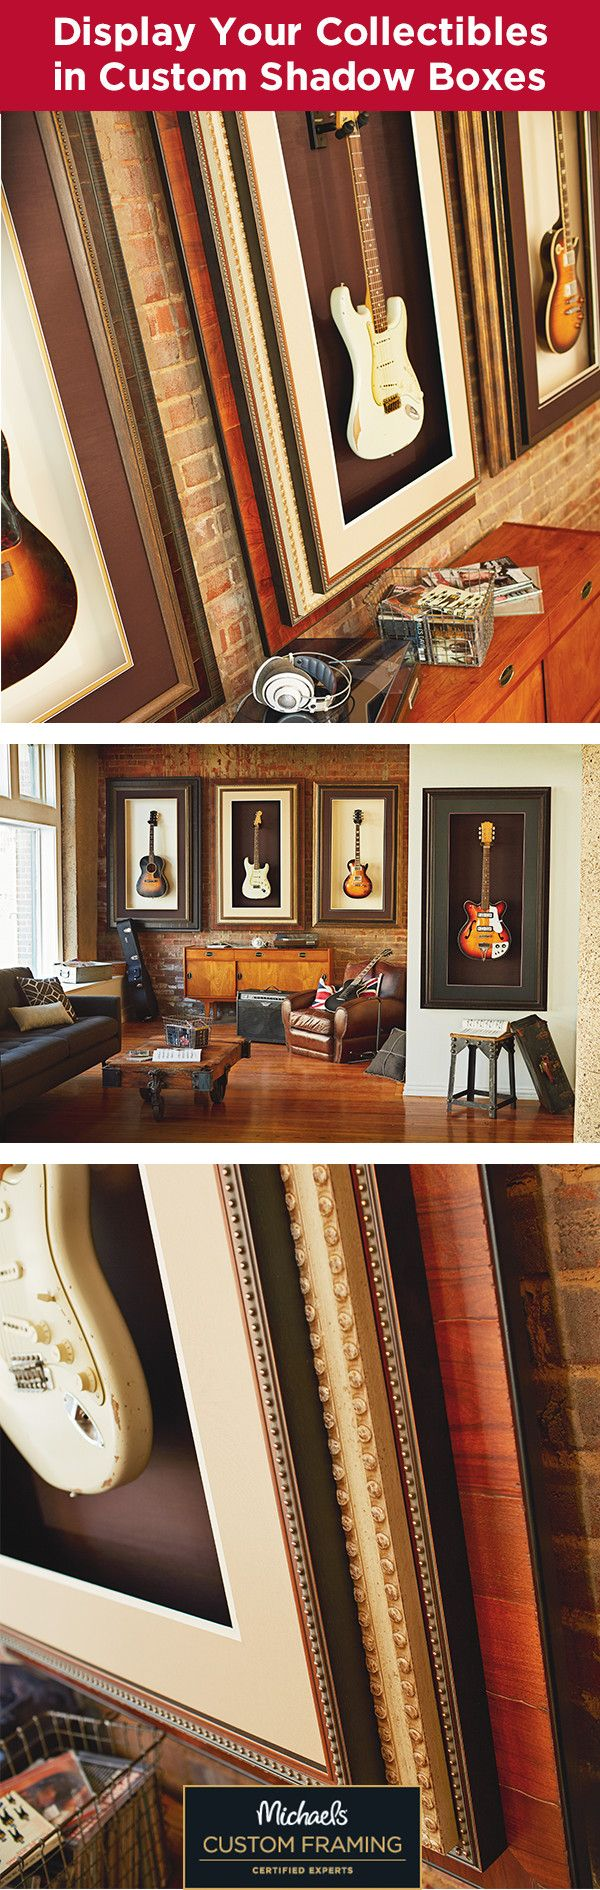 guitar storage guitar room guitar wall michaels store cool guitar guitar stand custom framing guitar collection in the shadows